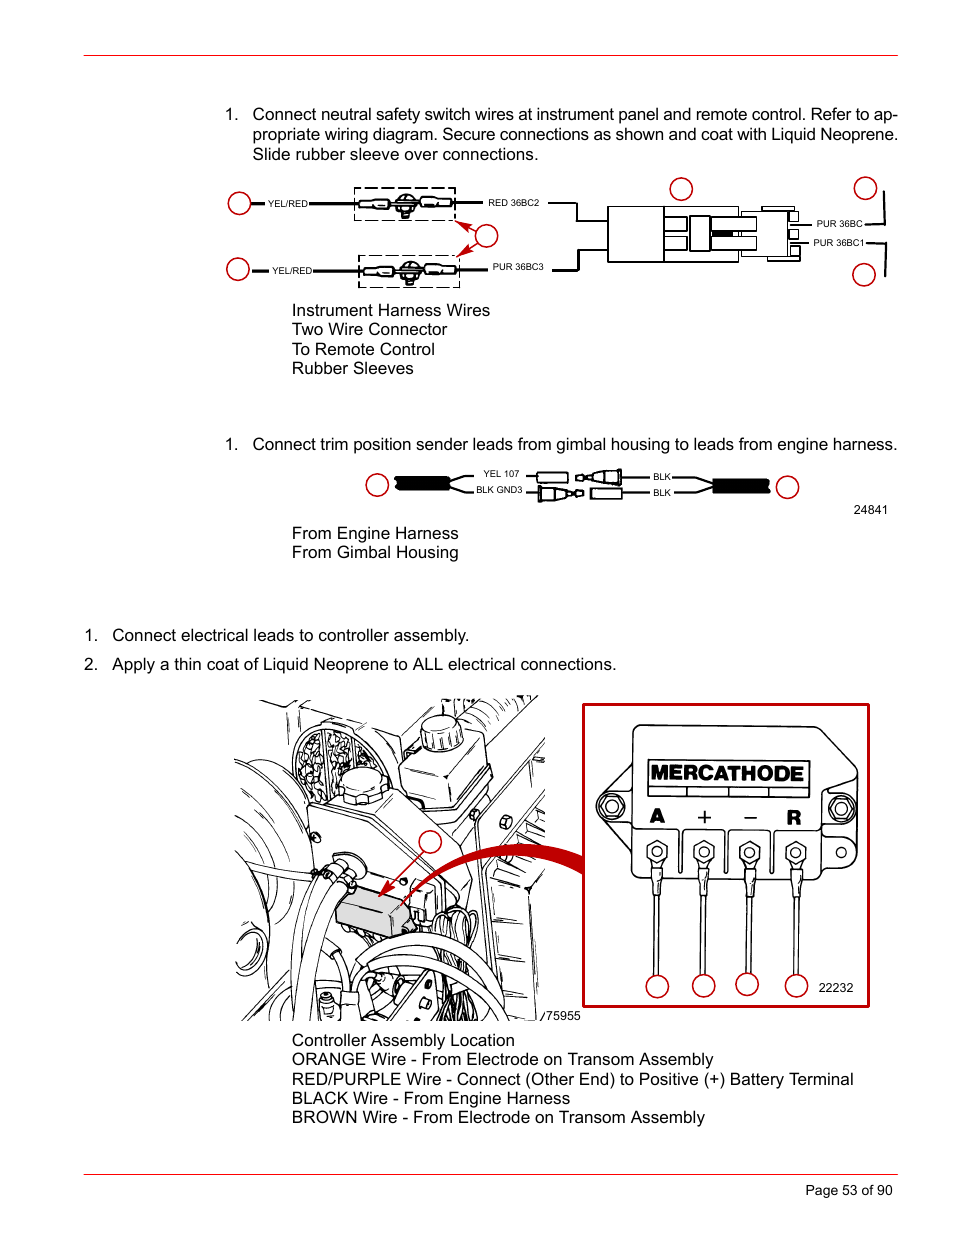 Mercruiser Trim Sensor Wiring Diagram Mercury Installation Manual D73l D Tronic User Page 53 90